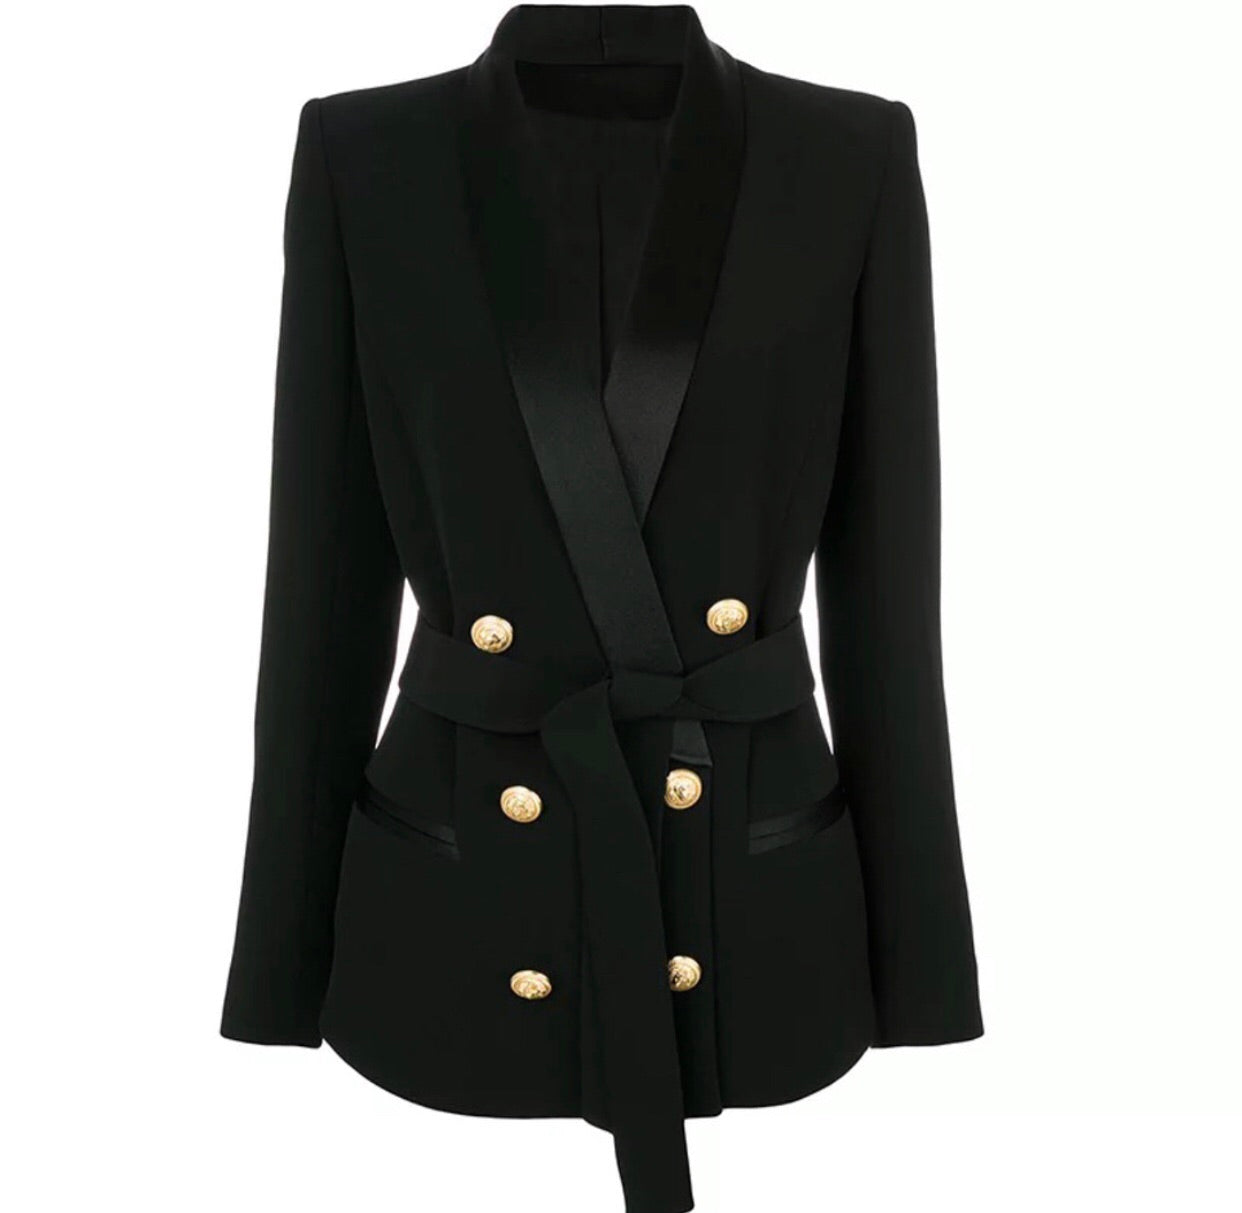 Double Breasted Tie Blazer with Gold Hardware - Black